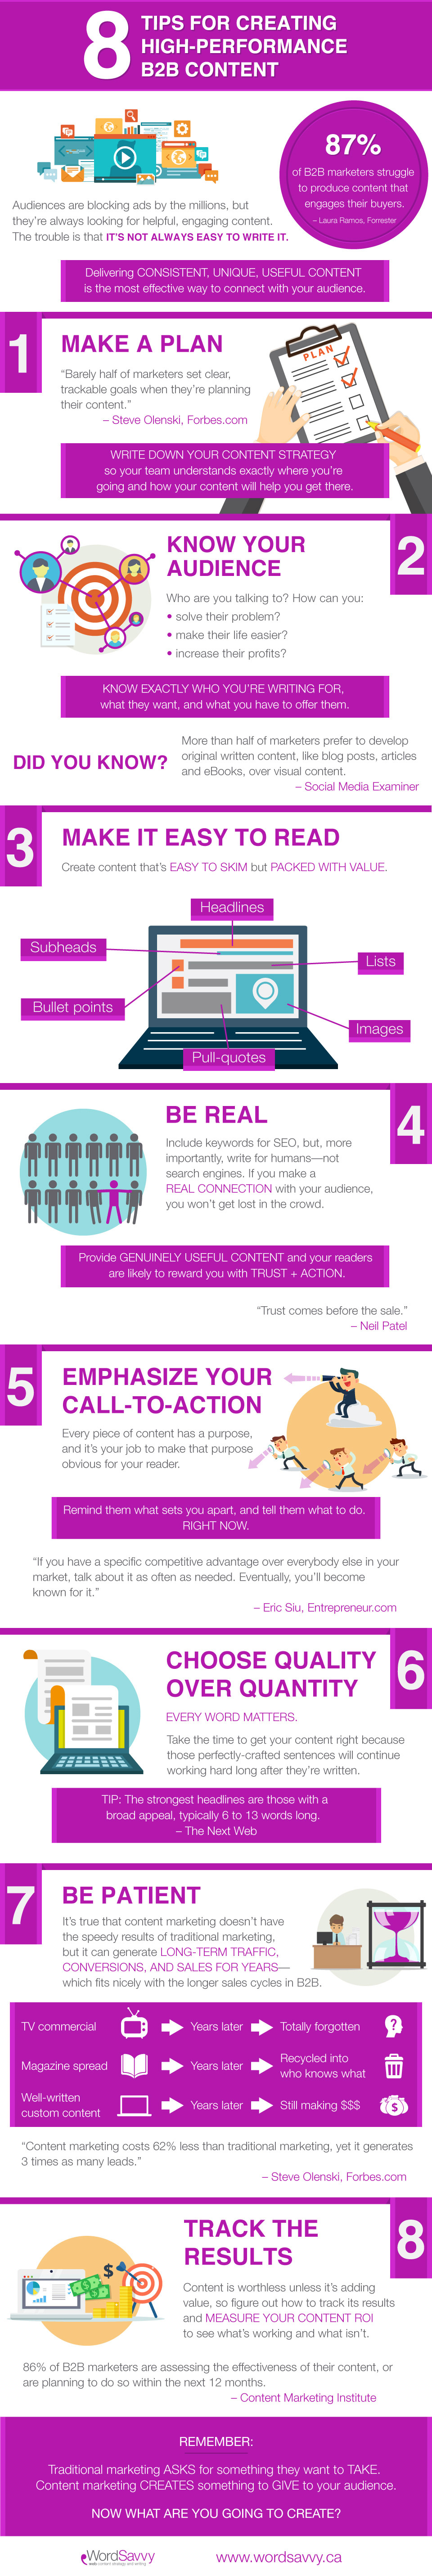 Infographic that provides 8 tips for creating high-performance B2B content